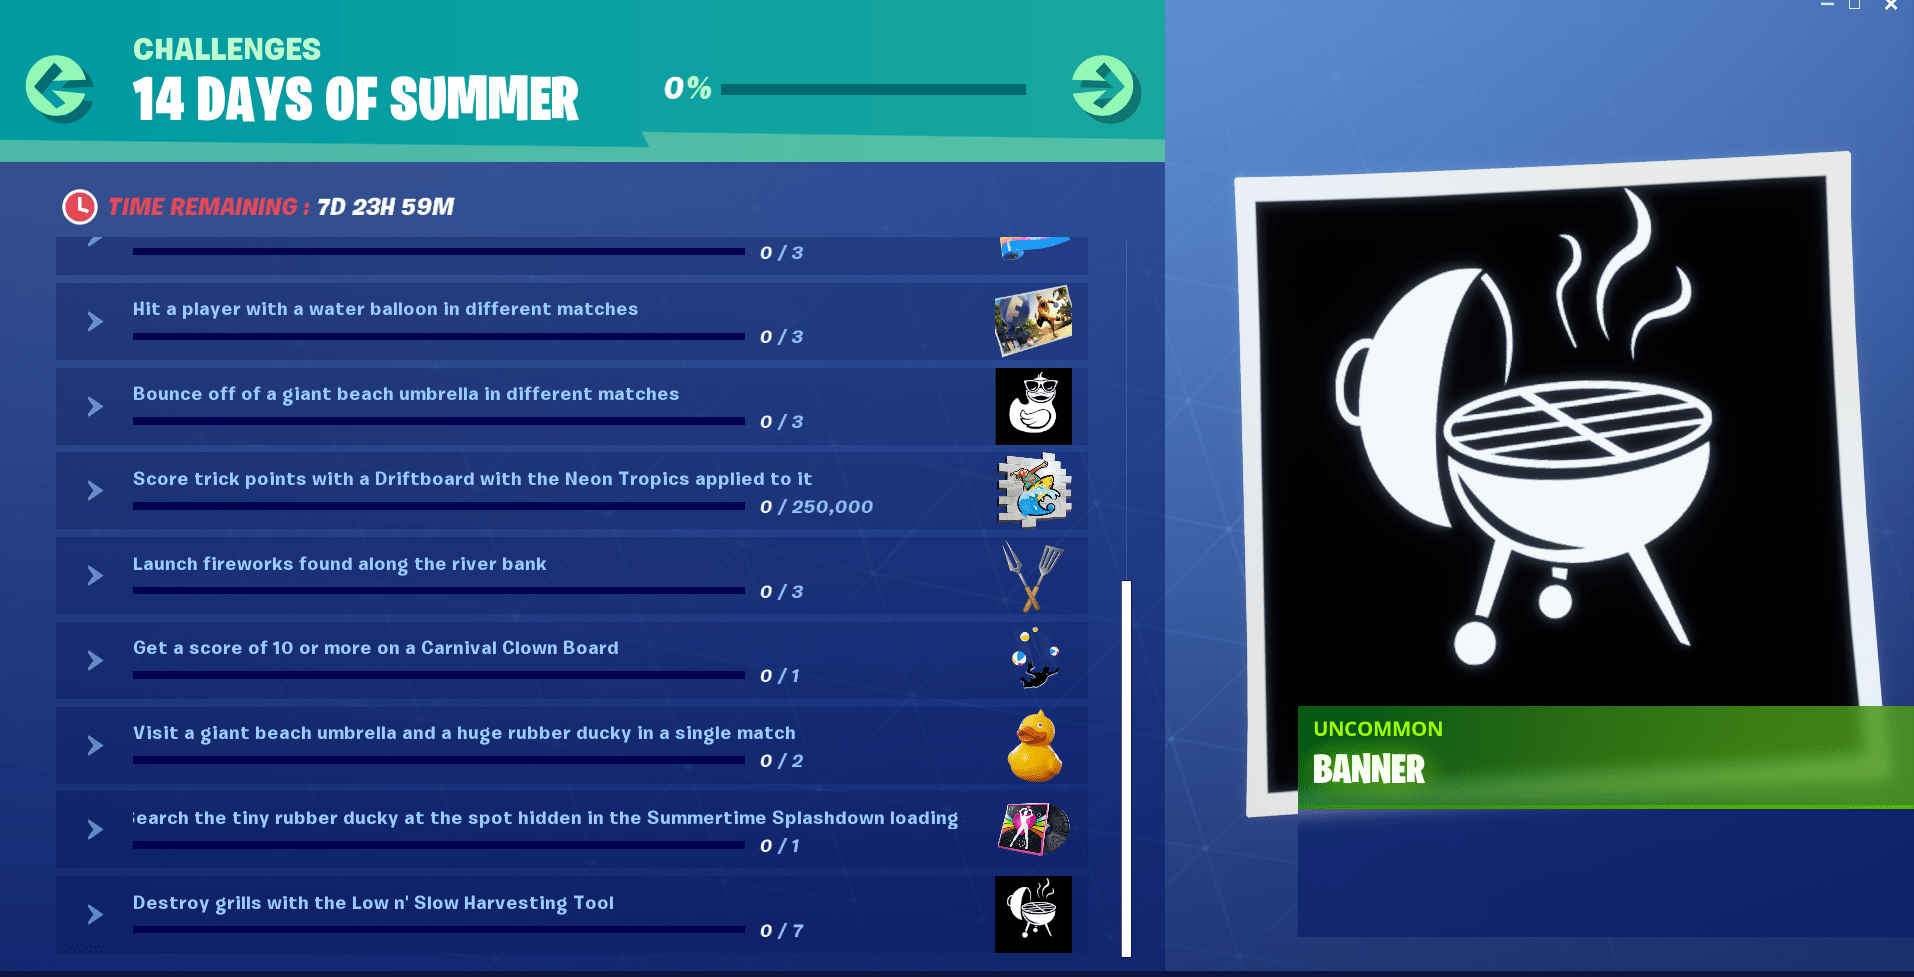 14 Days of Summer Fortnite Event - Day 14 Challenge and Reward